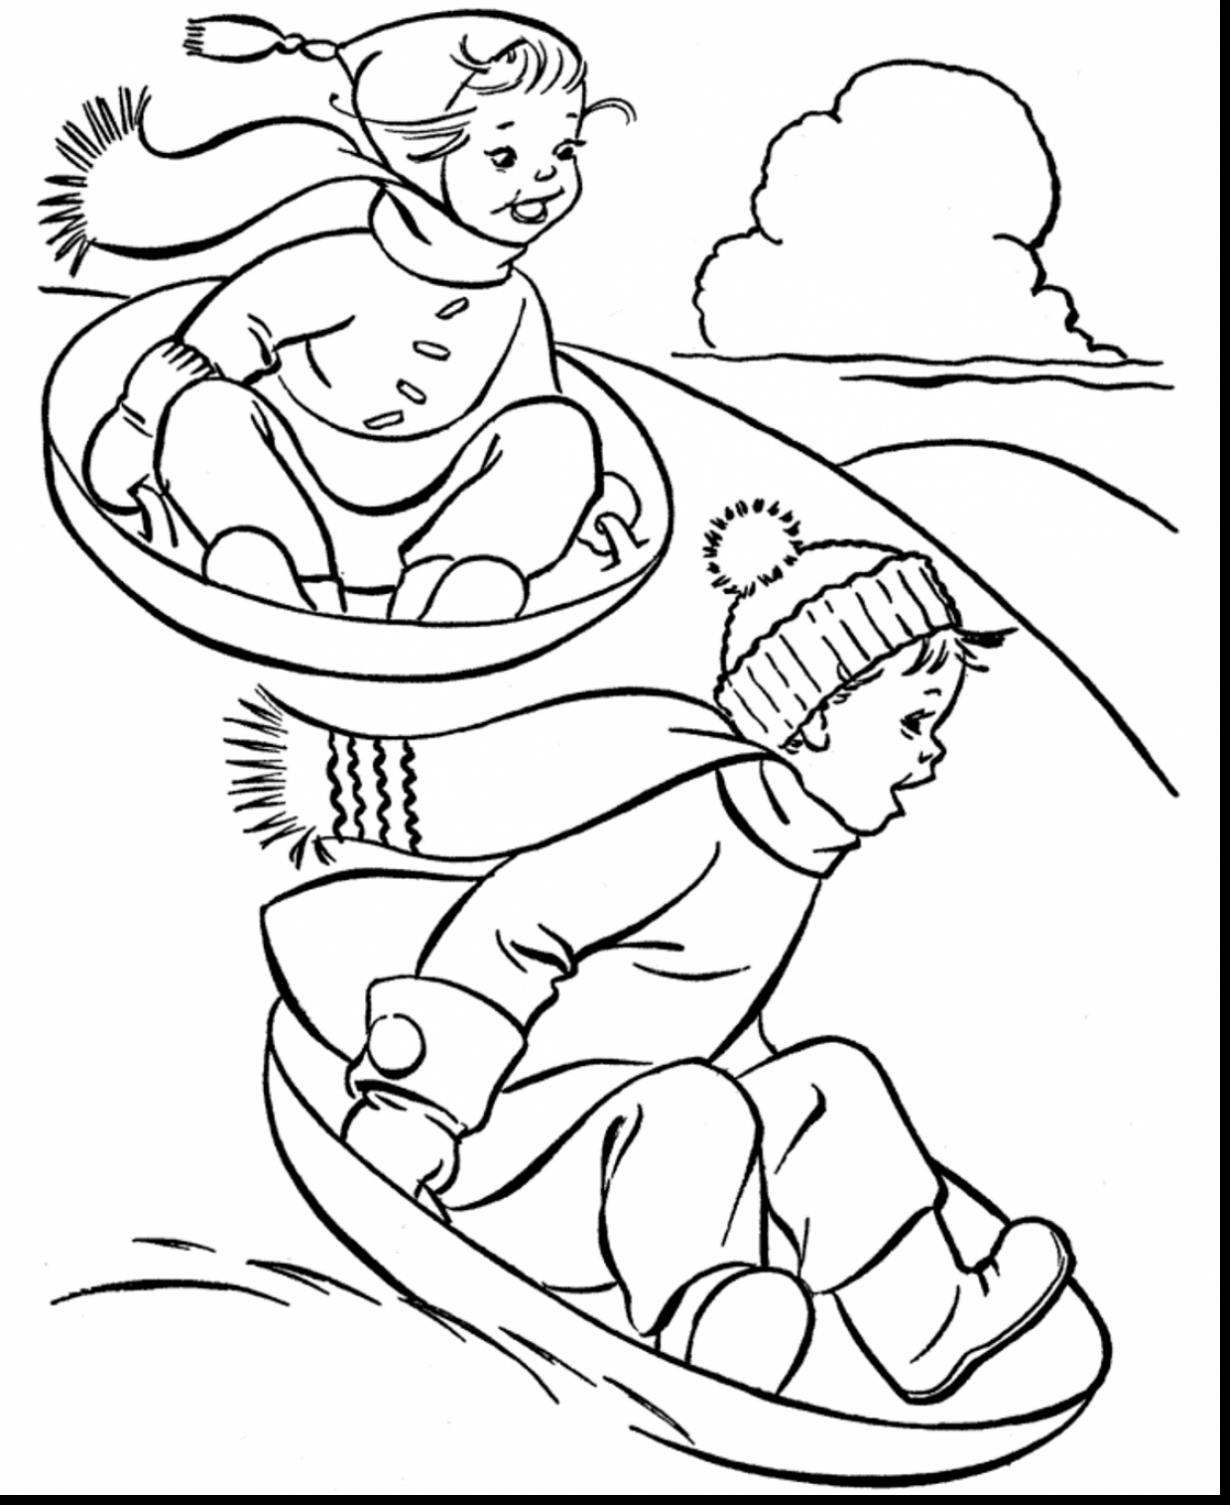 Winter Coloring Sheets For Toddlers – Pusat Hobi